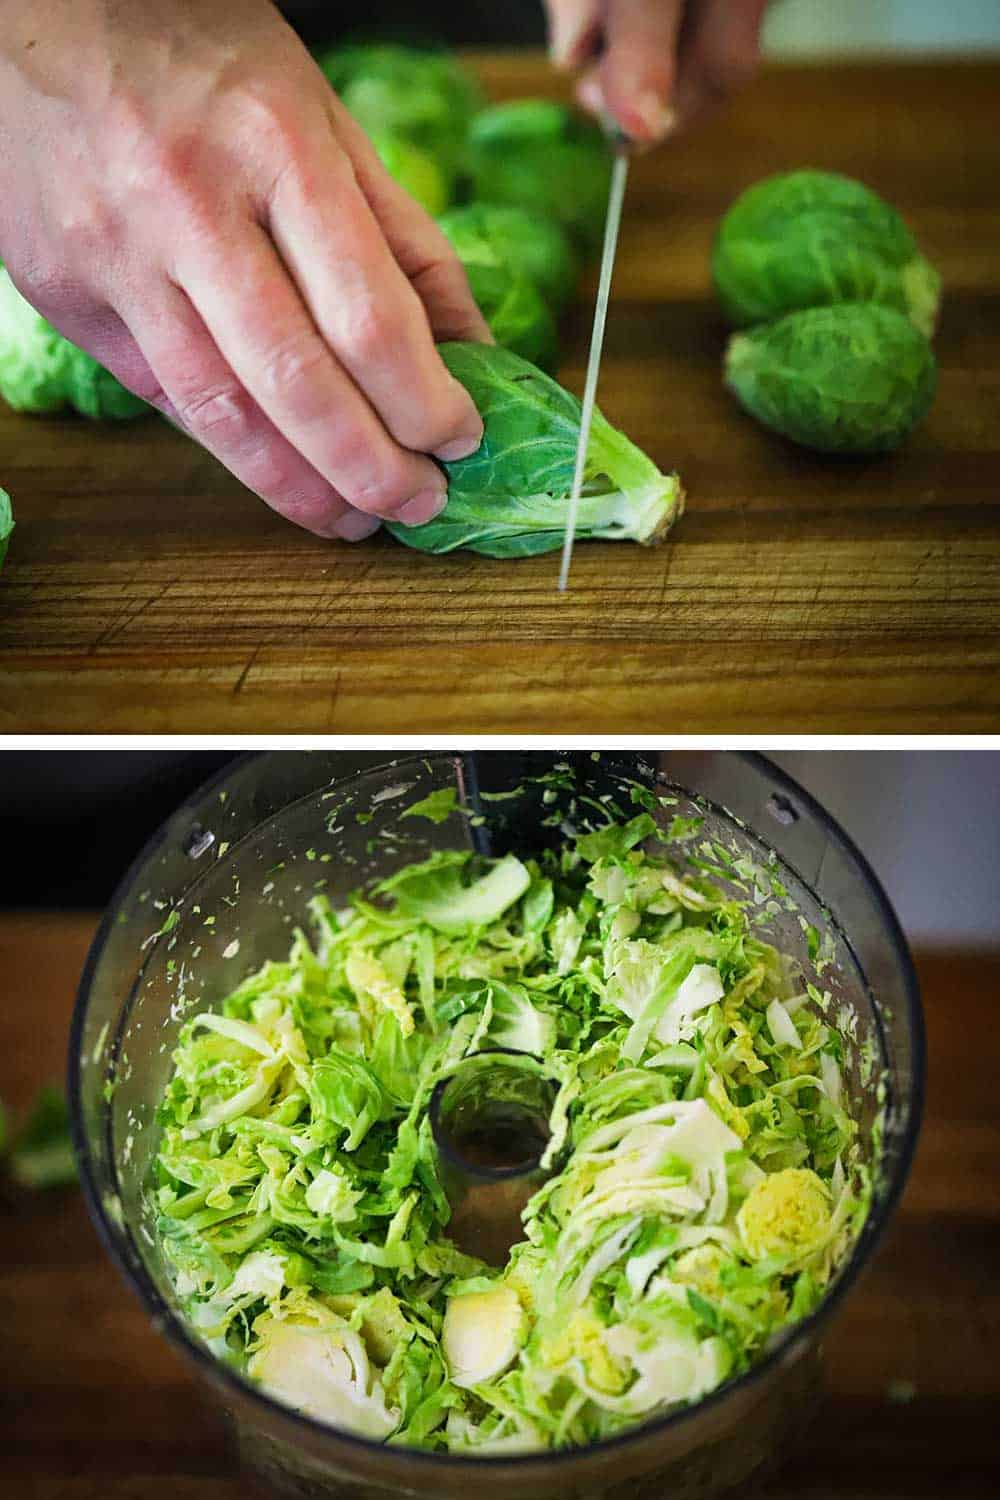 A person using a knife to cut the end off of a Brussels sprout and then a the bowl of a food processor filled with shaved sprouts.